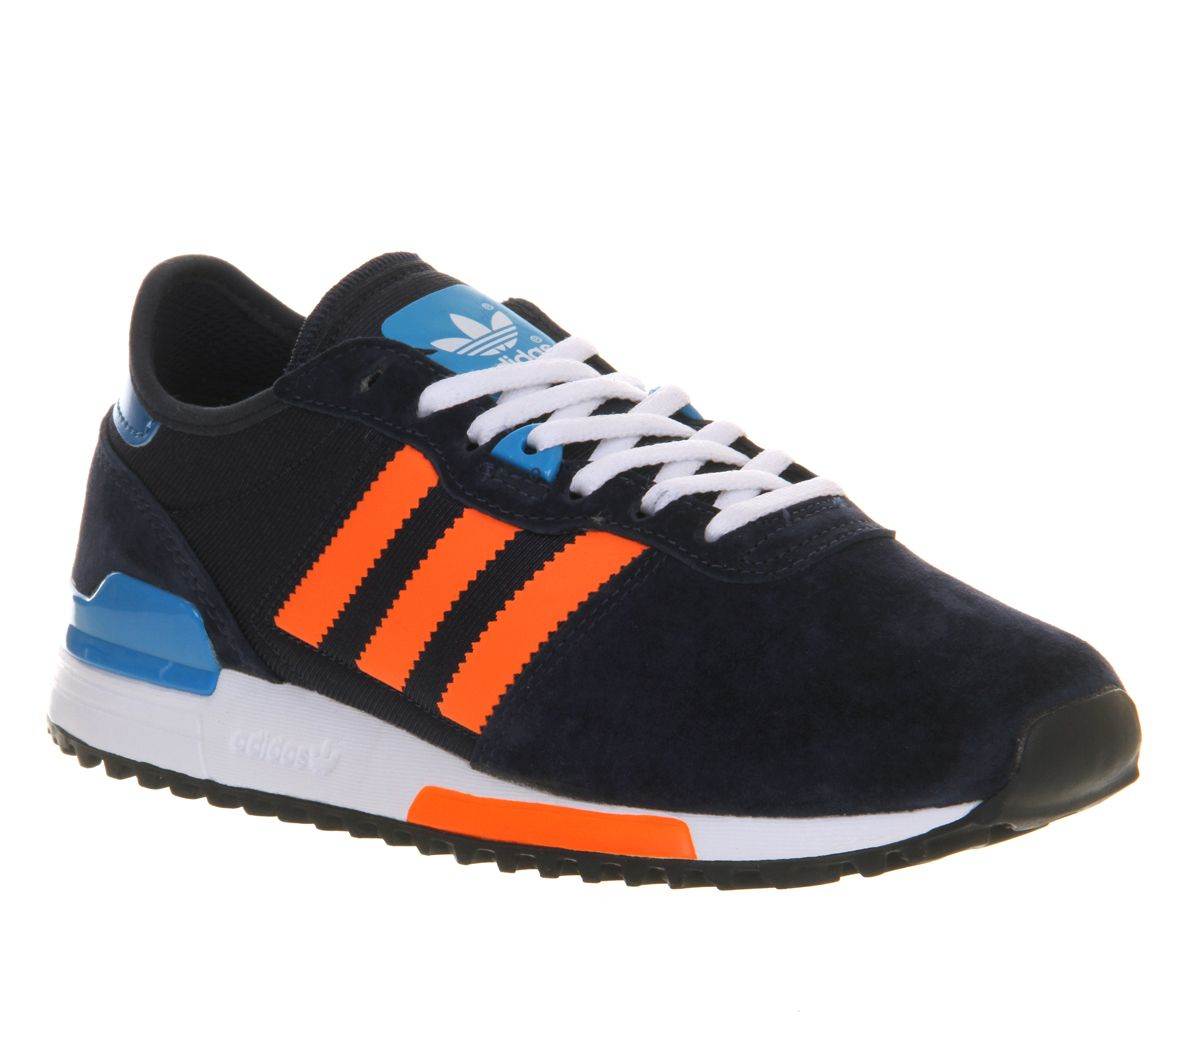 Zx 700 lithe trainers